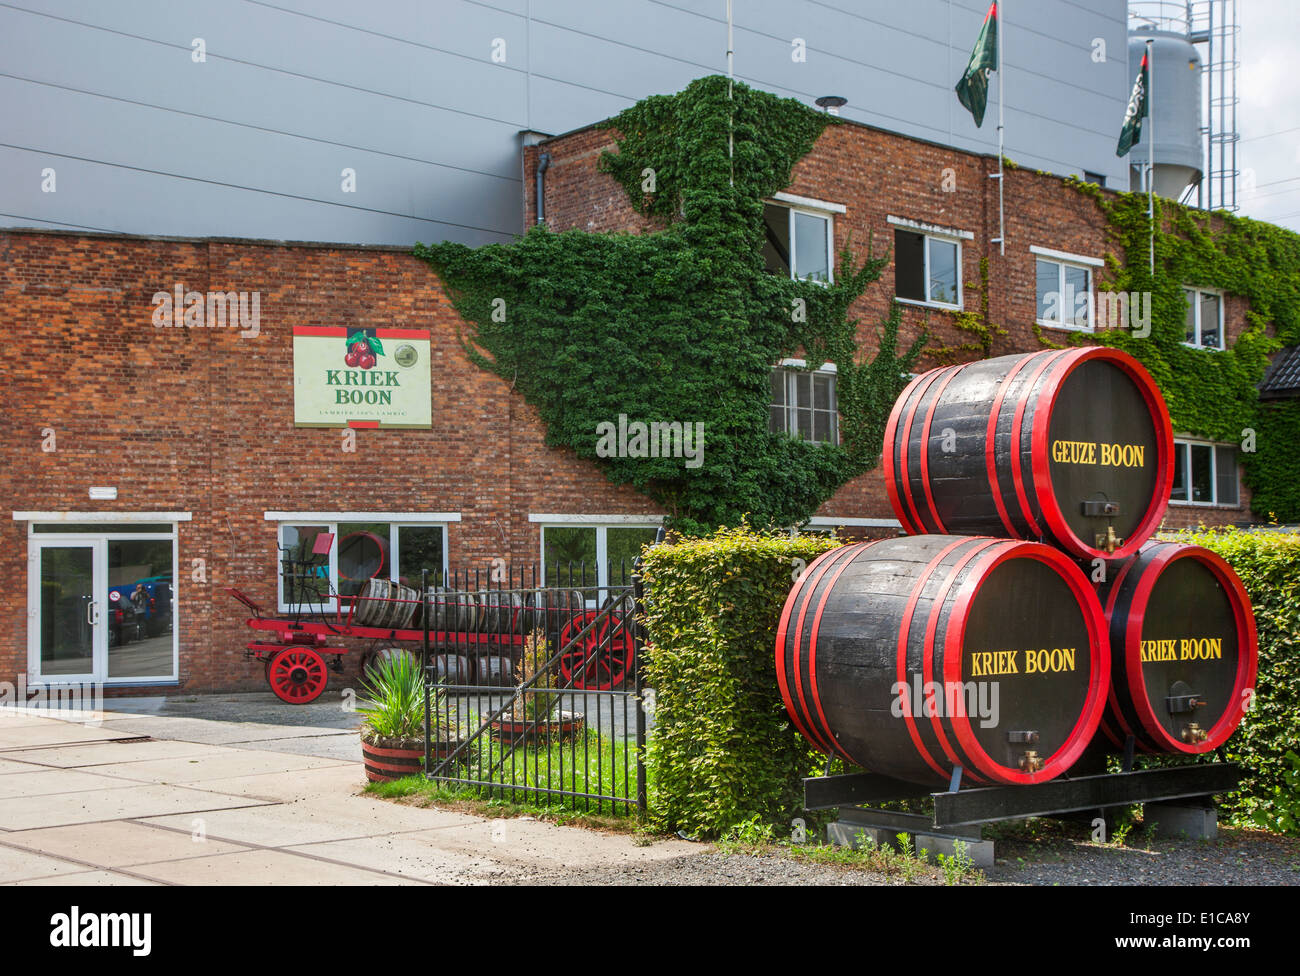 Entrance of the Brouwerij Boon, Belgian brewery at Lembeek near Brussels, producer of geuze and kriek beer - Stock Image